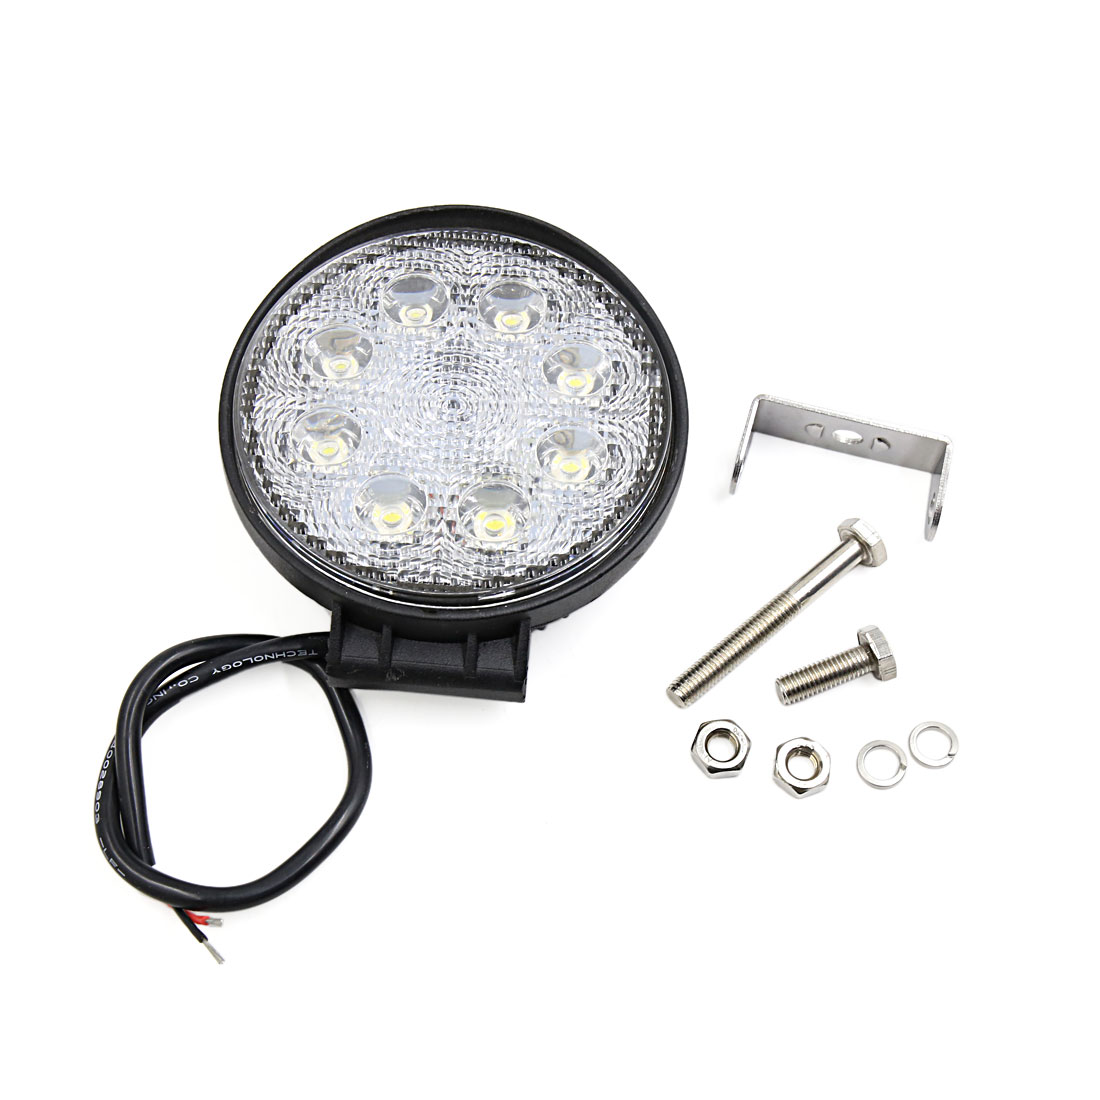 Black Metal Shell Round 24W Flood Beam 8 LED Work light Fog Driving Lamp Offroad SUV ATV Jeep Boat Internal